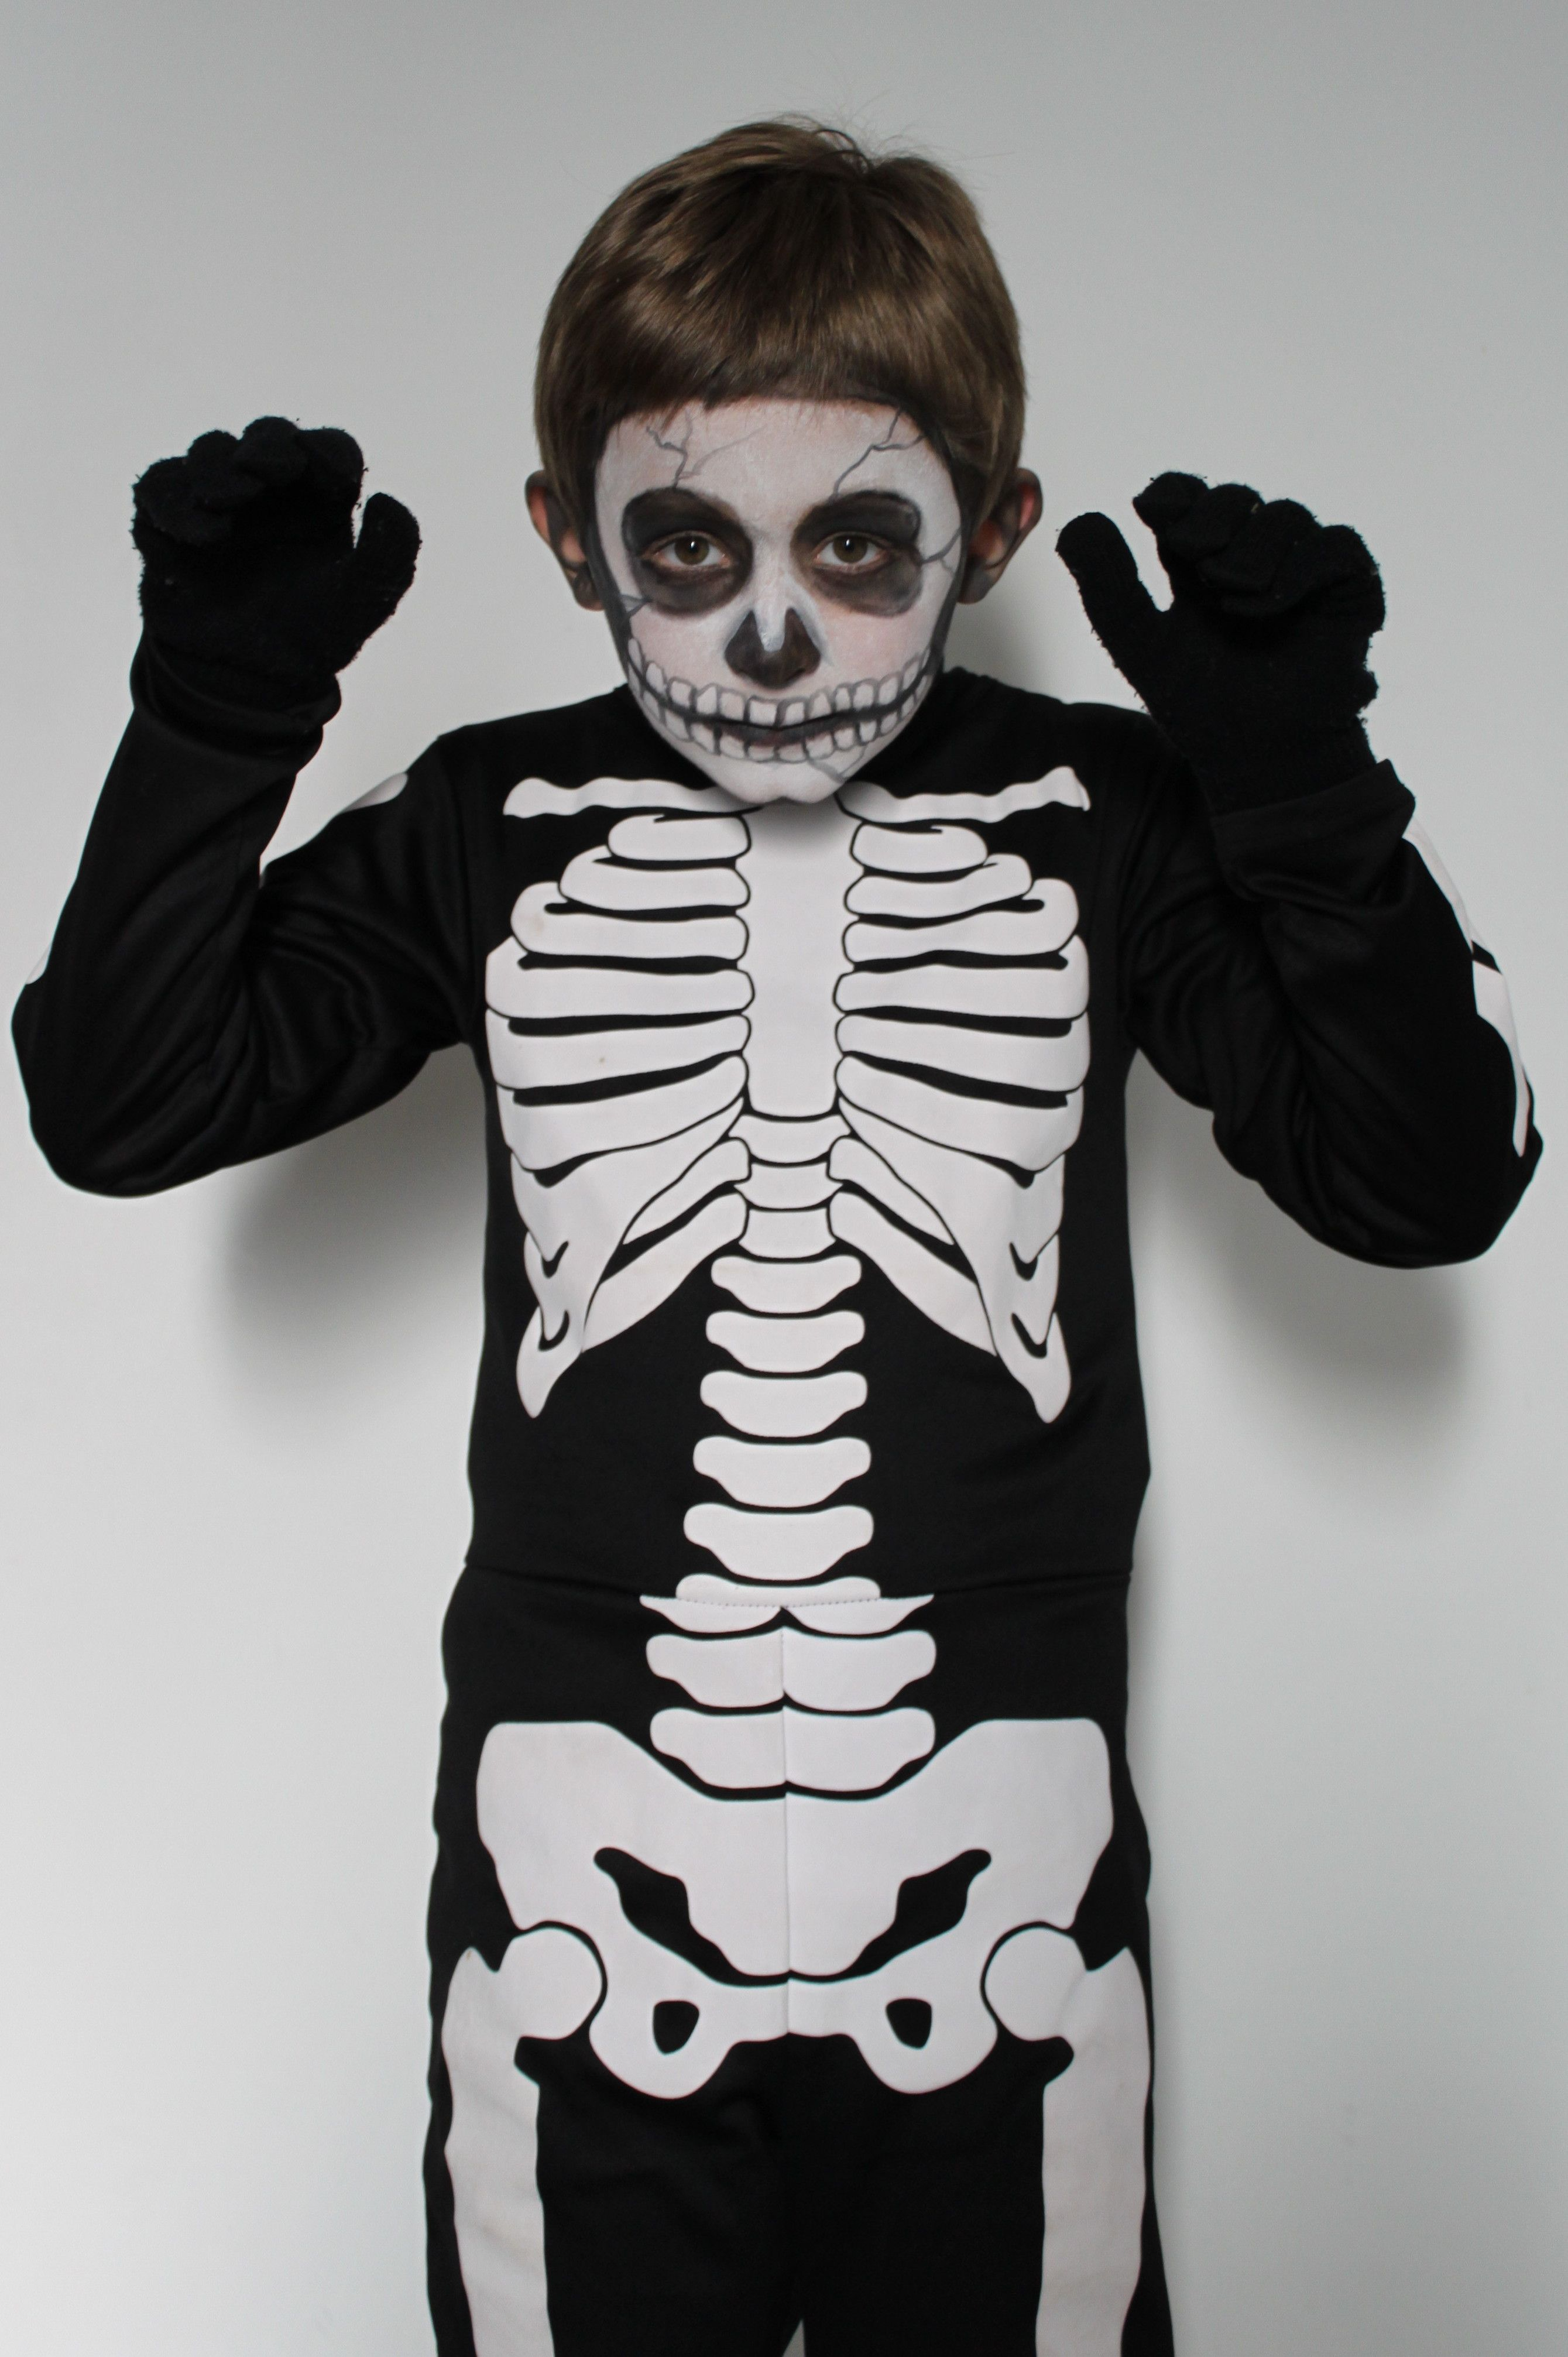 My Sonu0026#39;s Skeleton Make-up | Make Up | Pinterest | Skeletons Costumes And Halloween Ideas